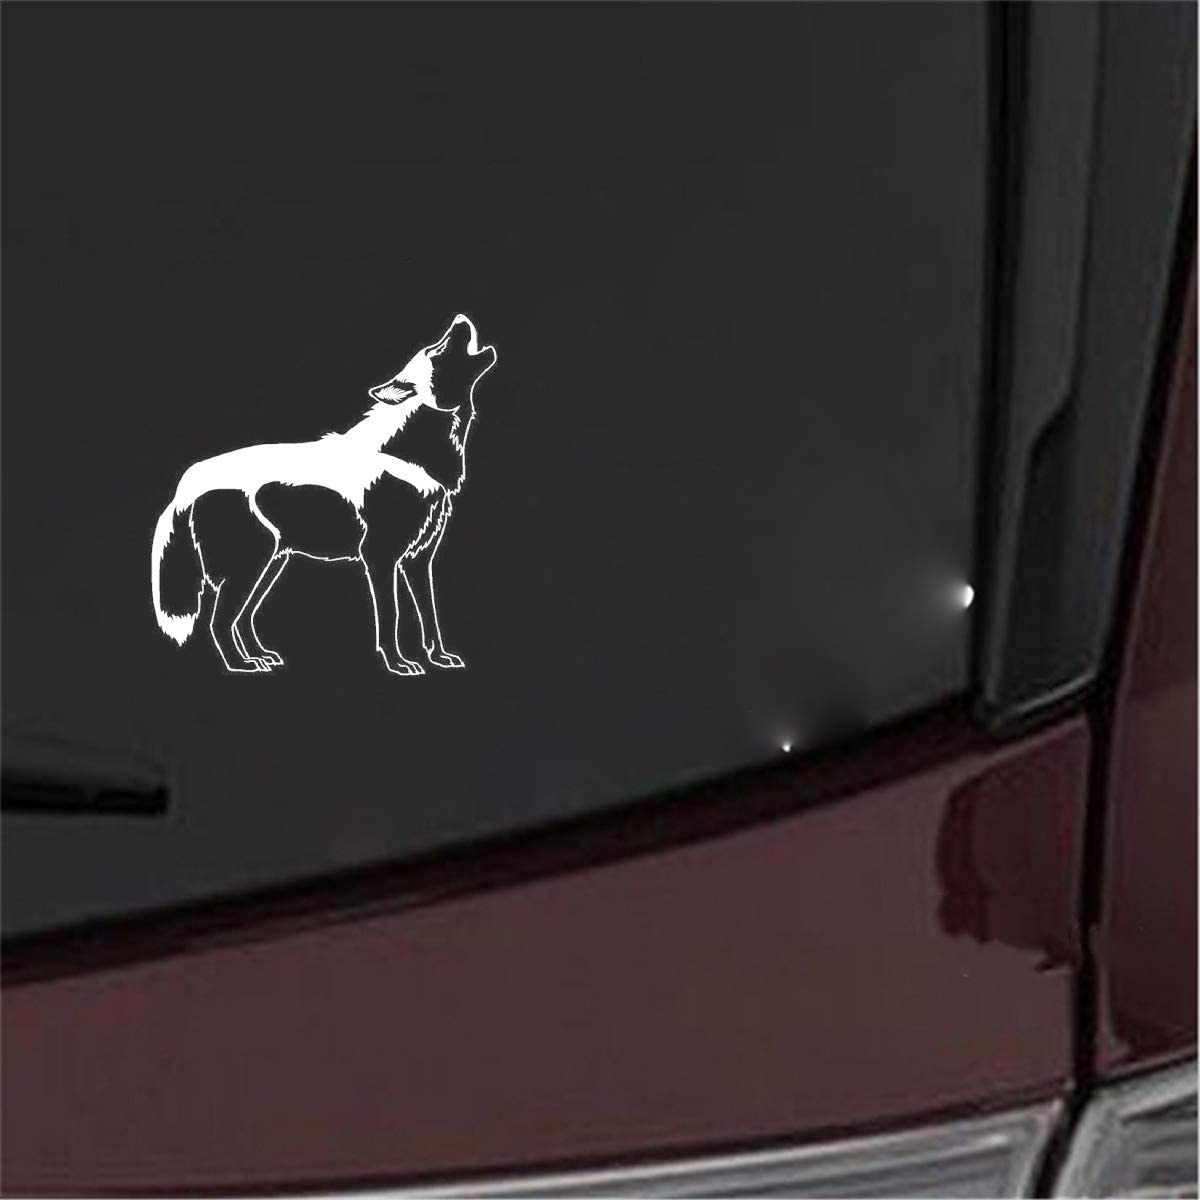 Promini Premium Anti-Dust Vinyl Decal A Howling Wolf Creative Car Door Stickers Large Wild Animal Car Styling Decals for Car Laptop Window Sticker 6 Inches